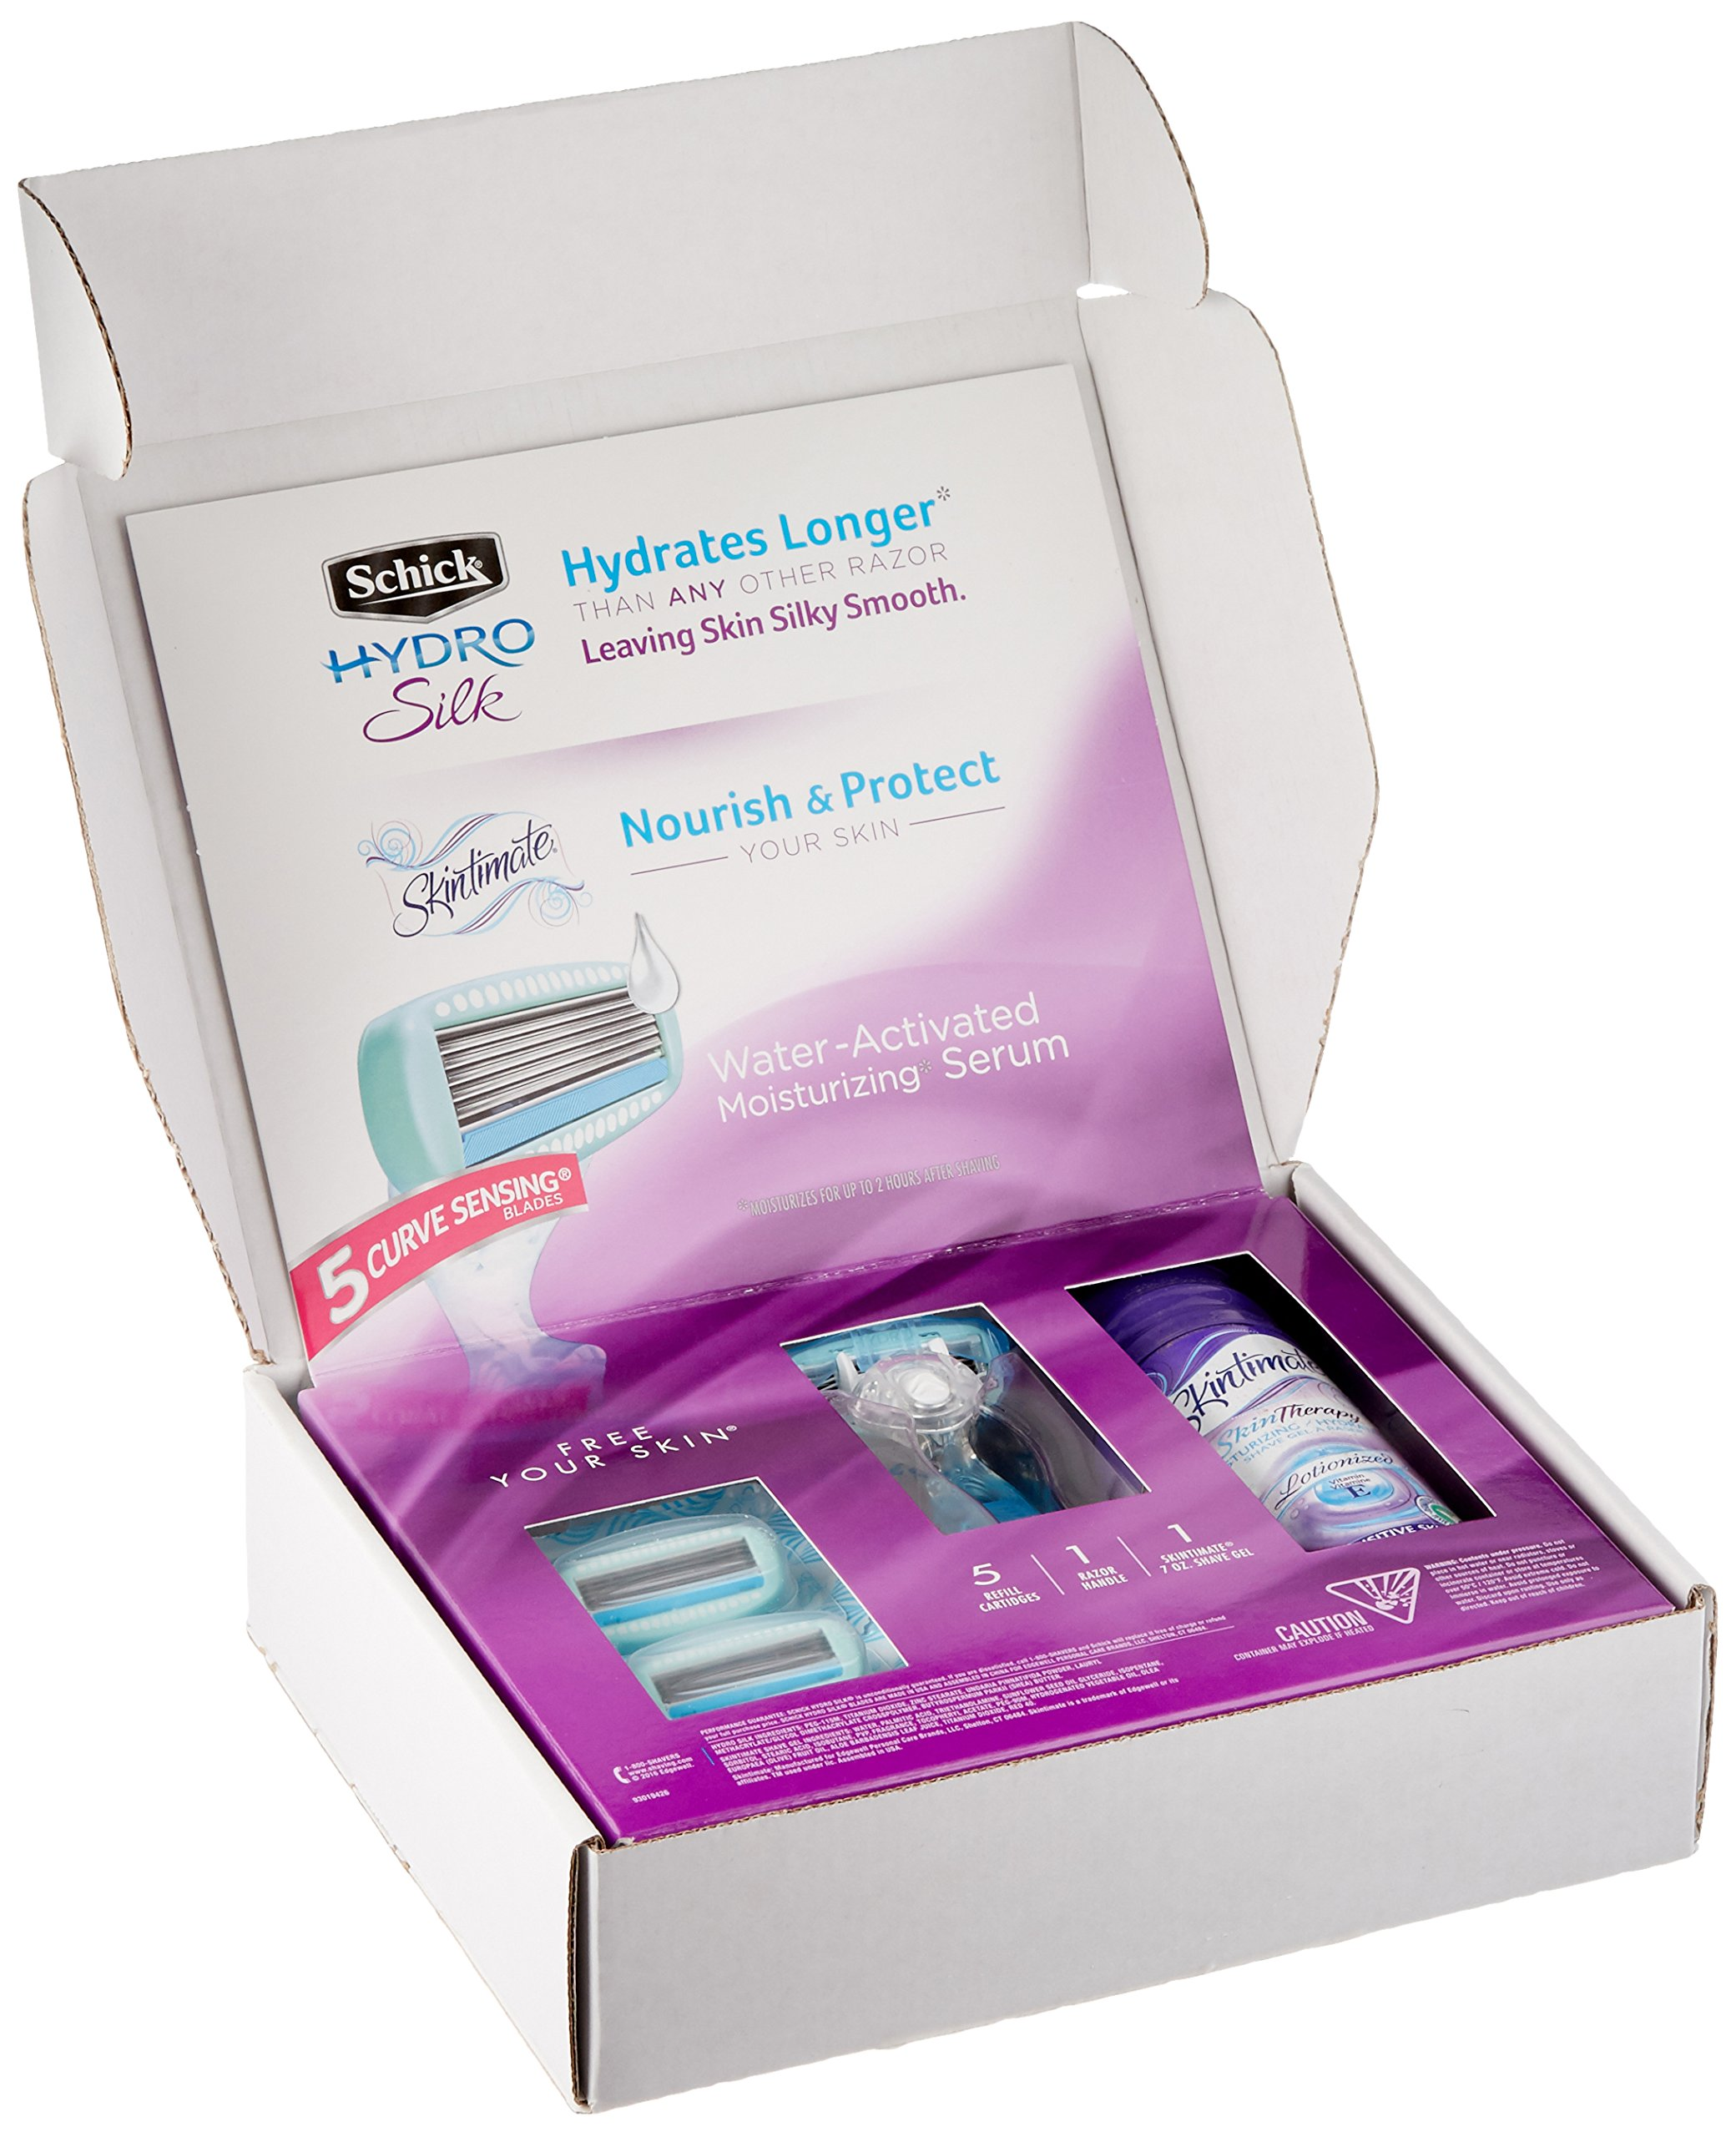 Schick Hydro Silk Shaving Starter Gift Set for Women with Shower Ready Razor Refill Blades and Skintimate Skin Therapy Shave Gel for Sensitive Skin by Schick (Image #7)